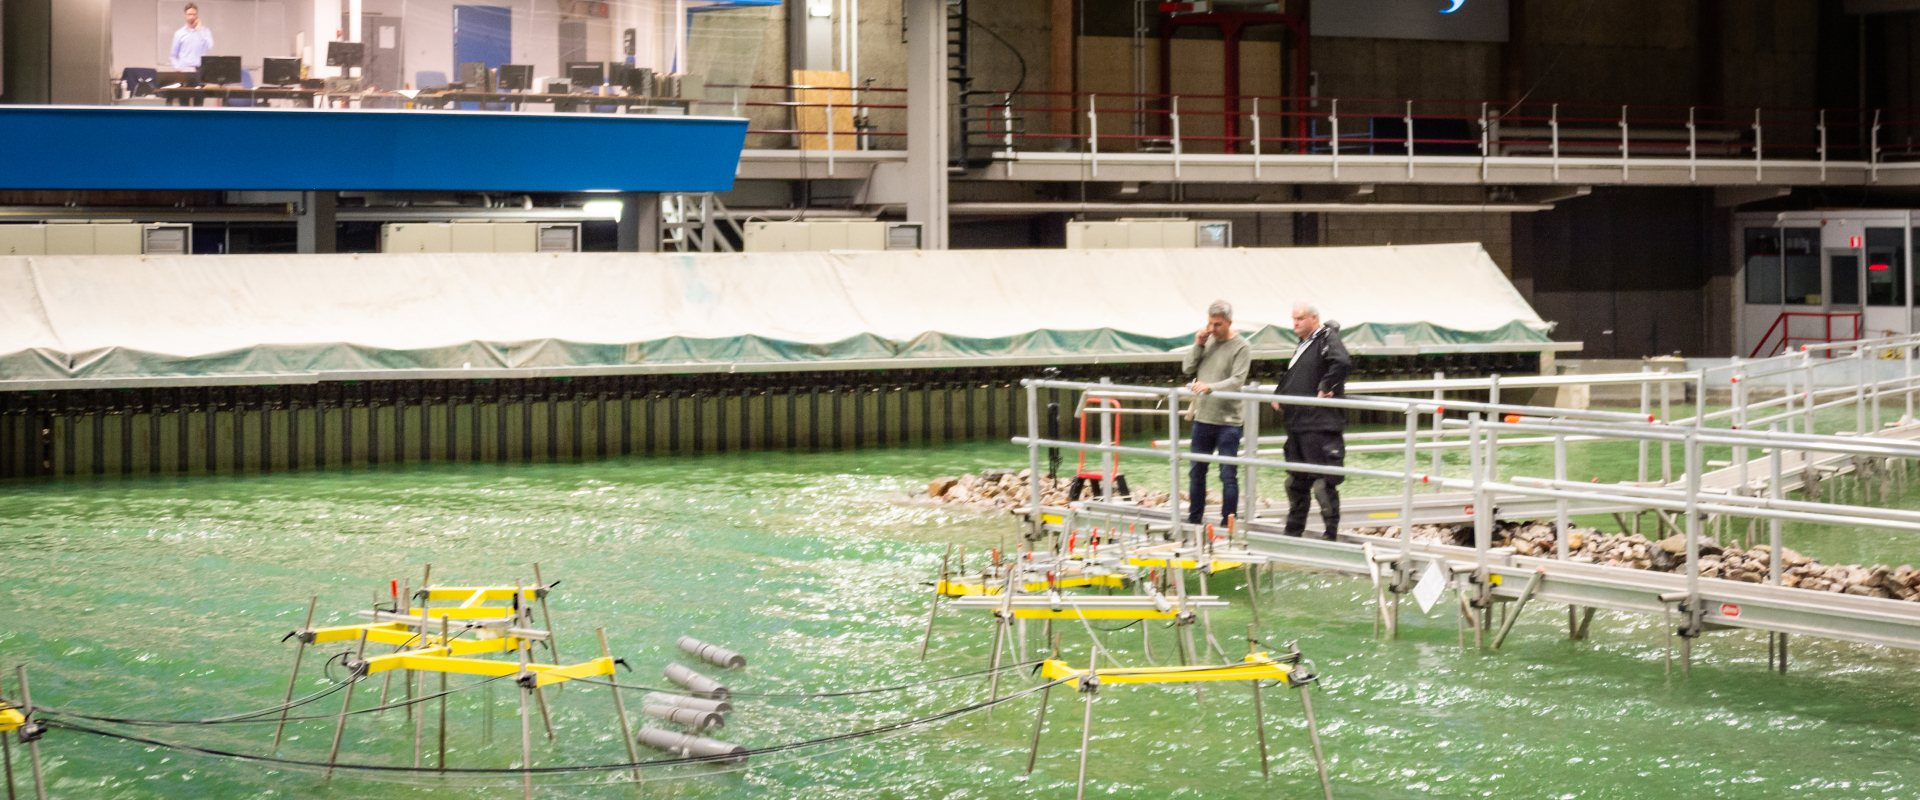 Model testing of Slow Mill wave energy convertors in the Dalta Basin at Deltares